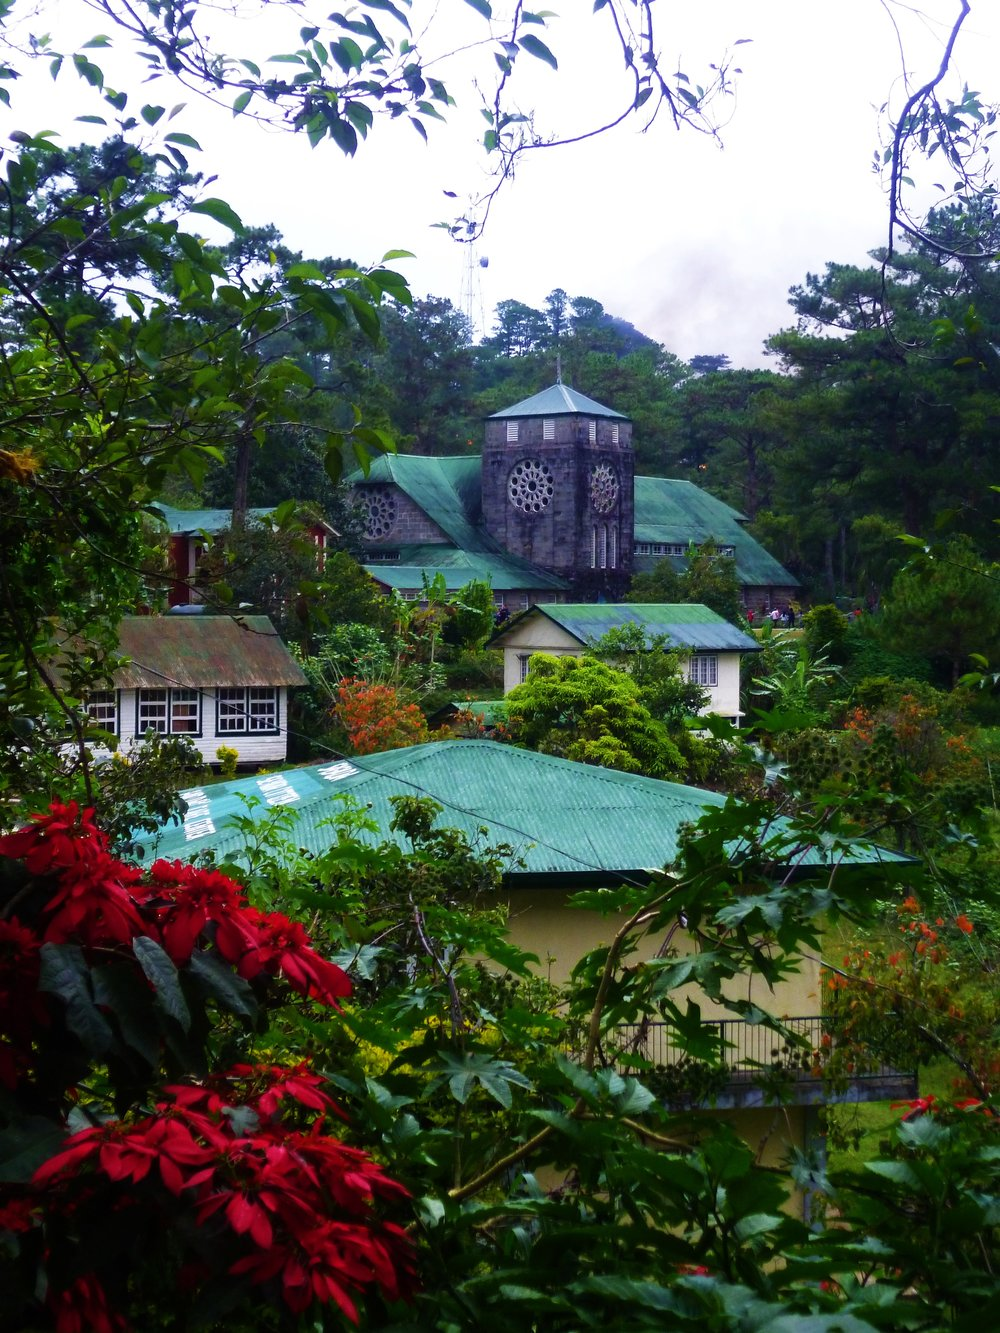 The lush but mysterious mountain town of Sagada...